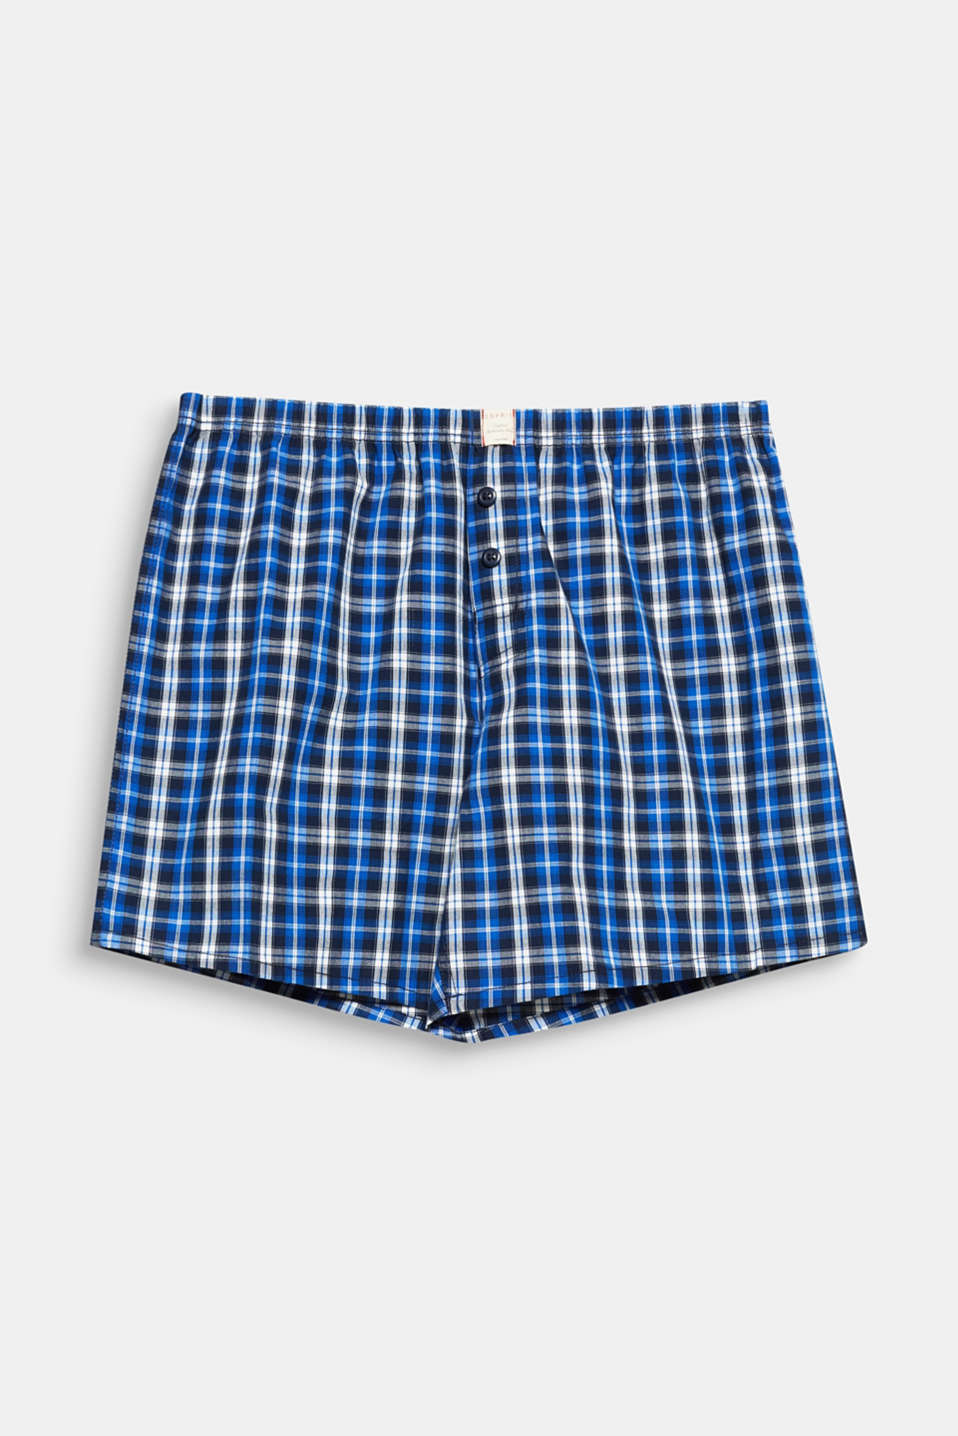 Trendy check on smooth cotton fabric - this winning combo makes these woven shorts truly lustworthy.